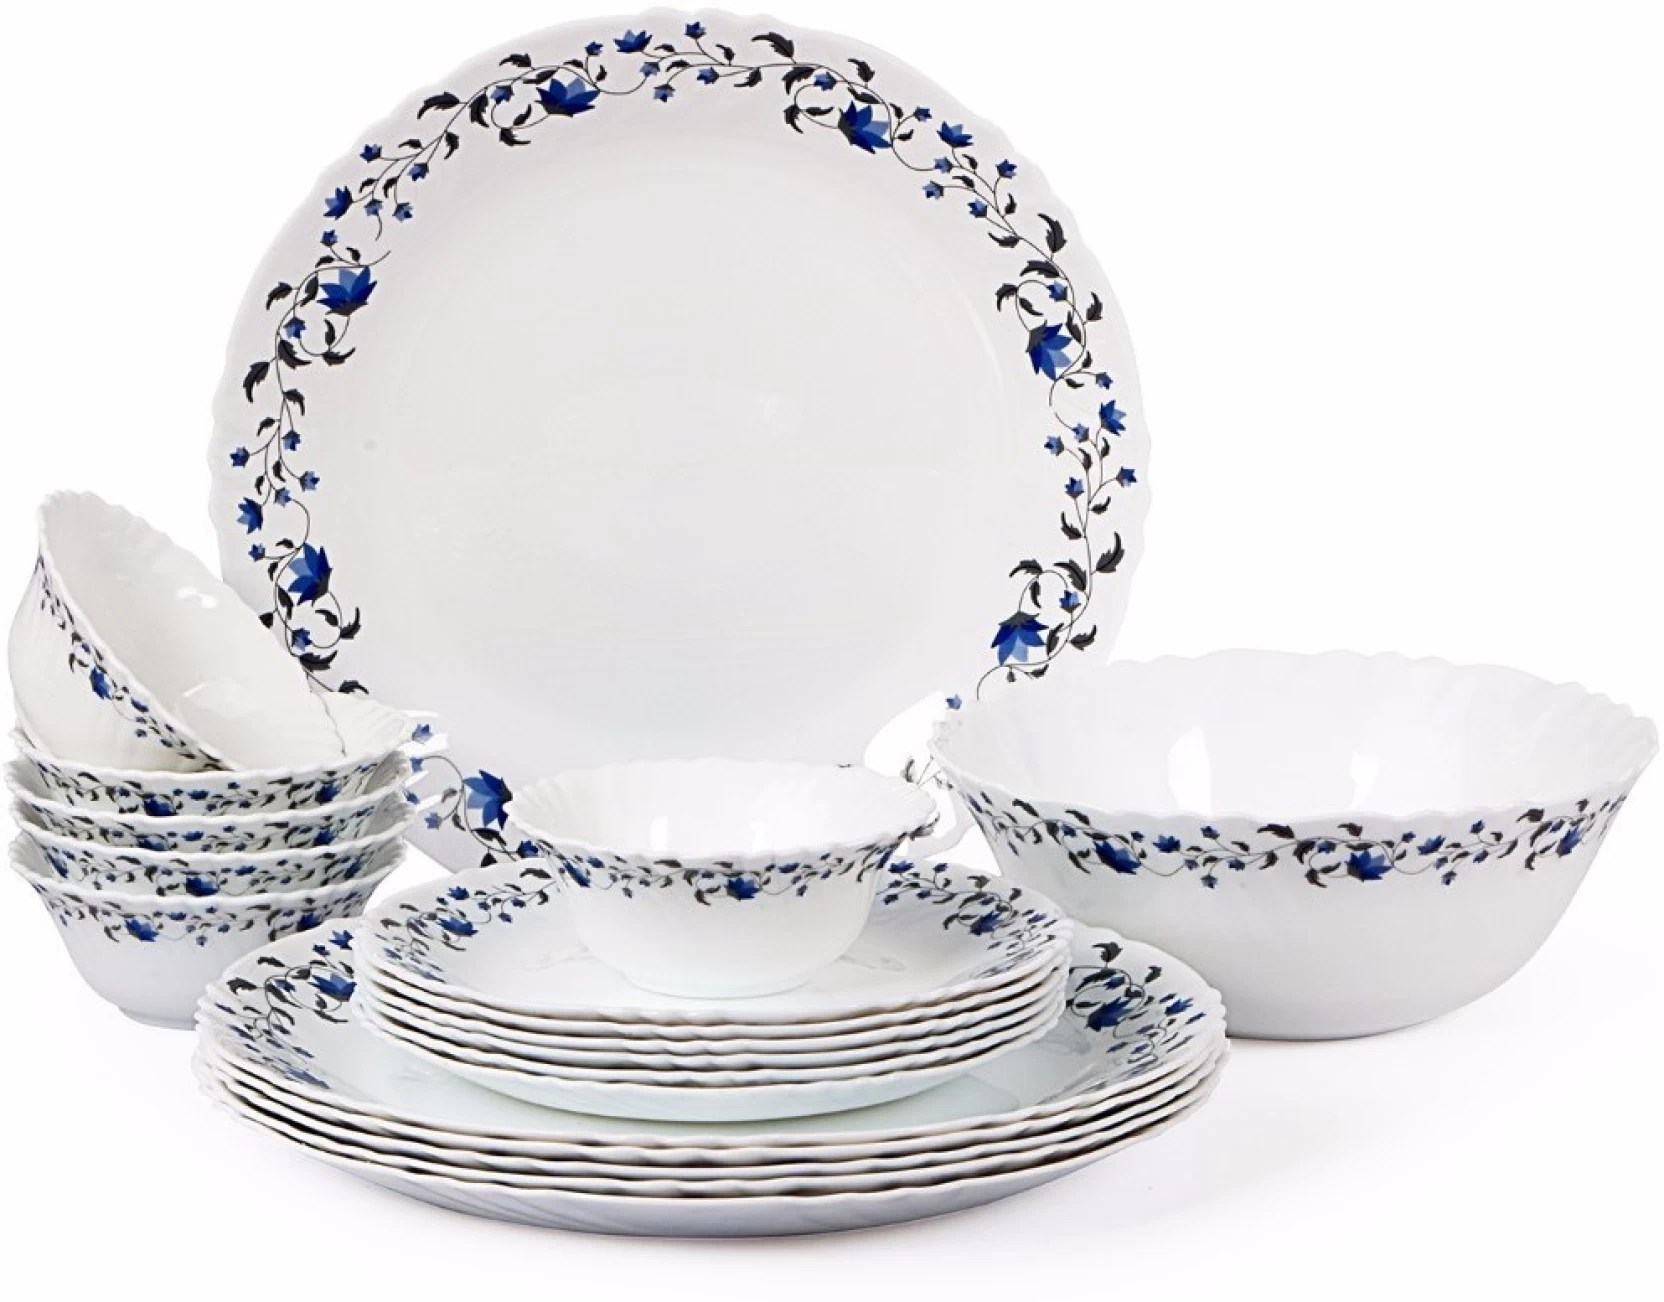 Dinner Set Cello Imperial Vinea Pack Of 19 Dinner Set Price In India